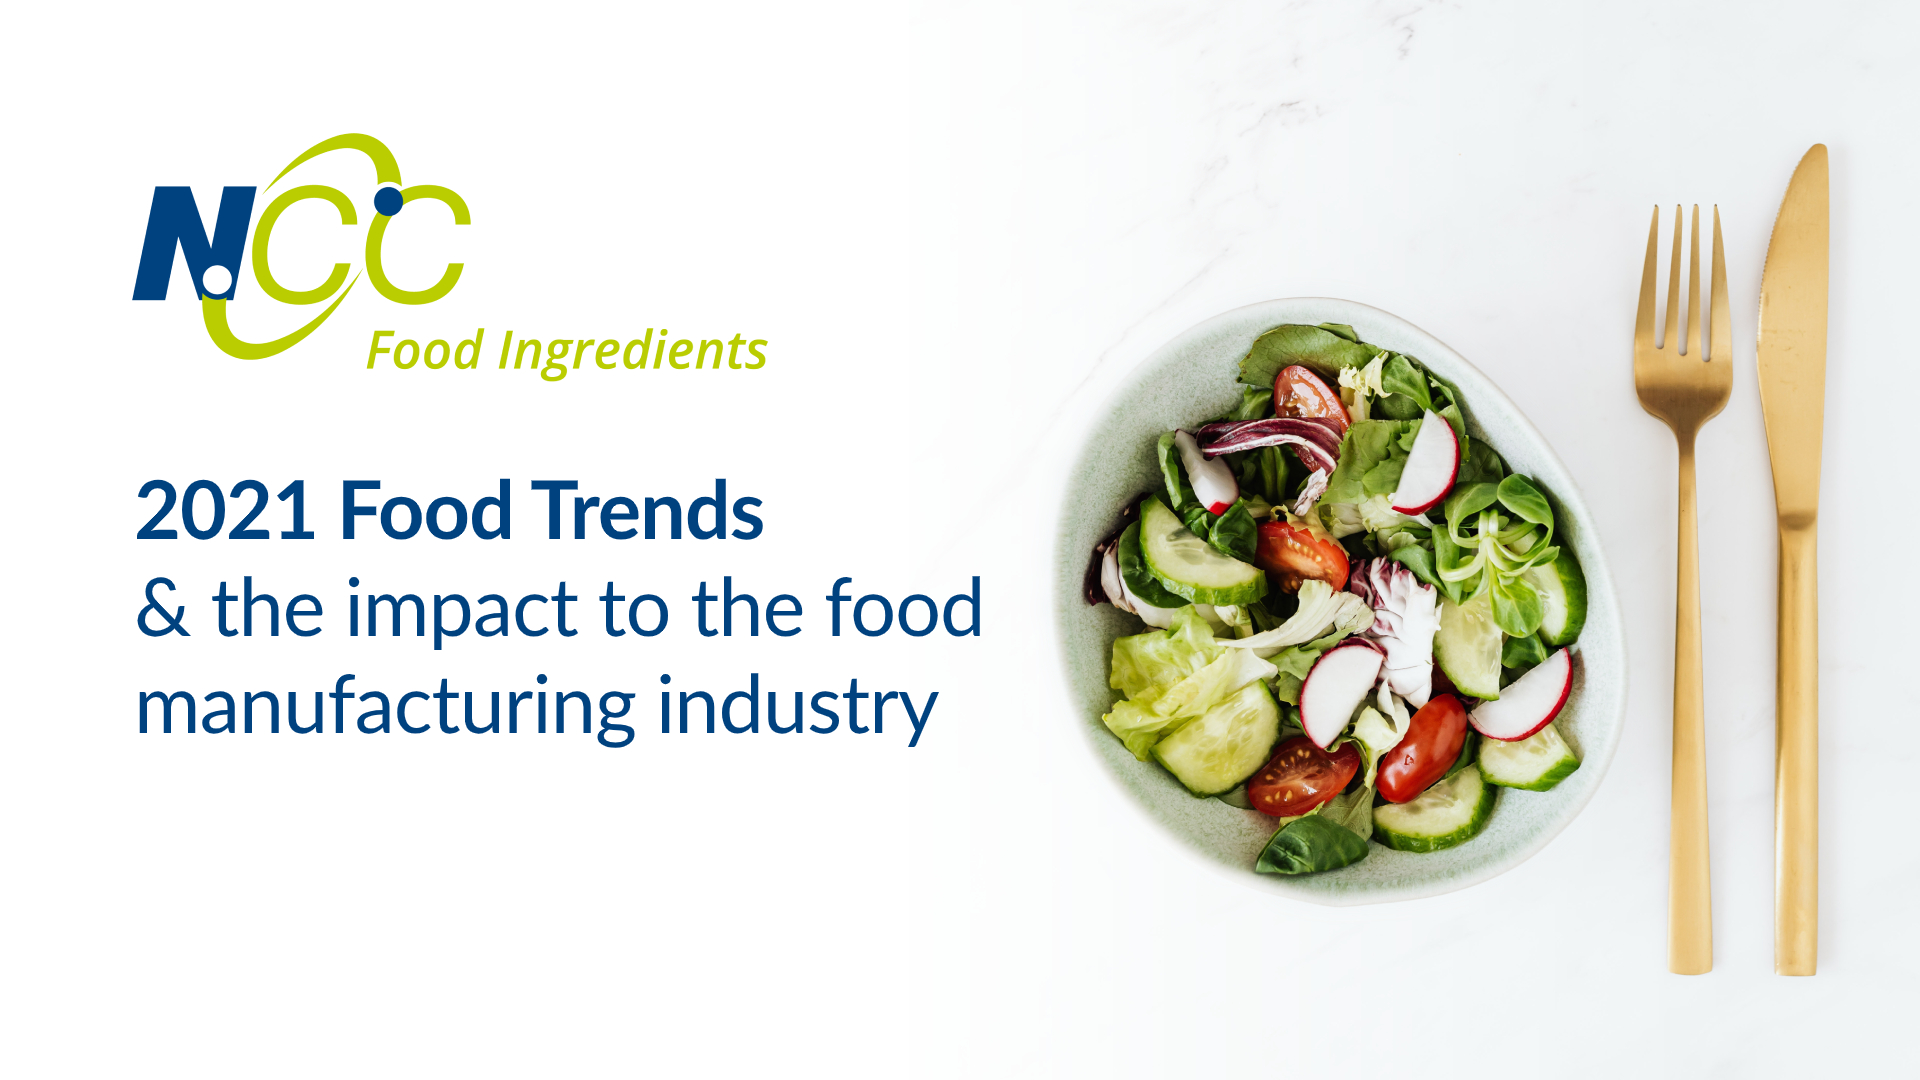 2021 Food Trends and the impact on the food manufacturing industry